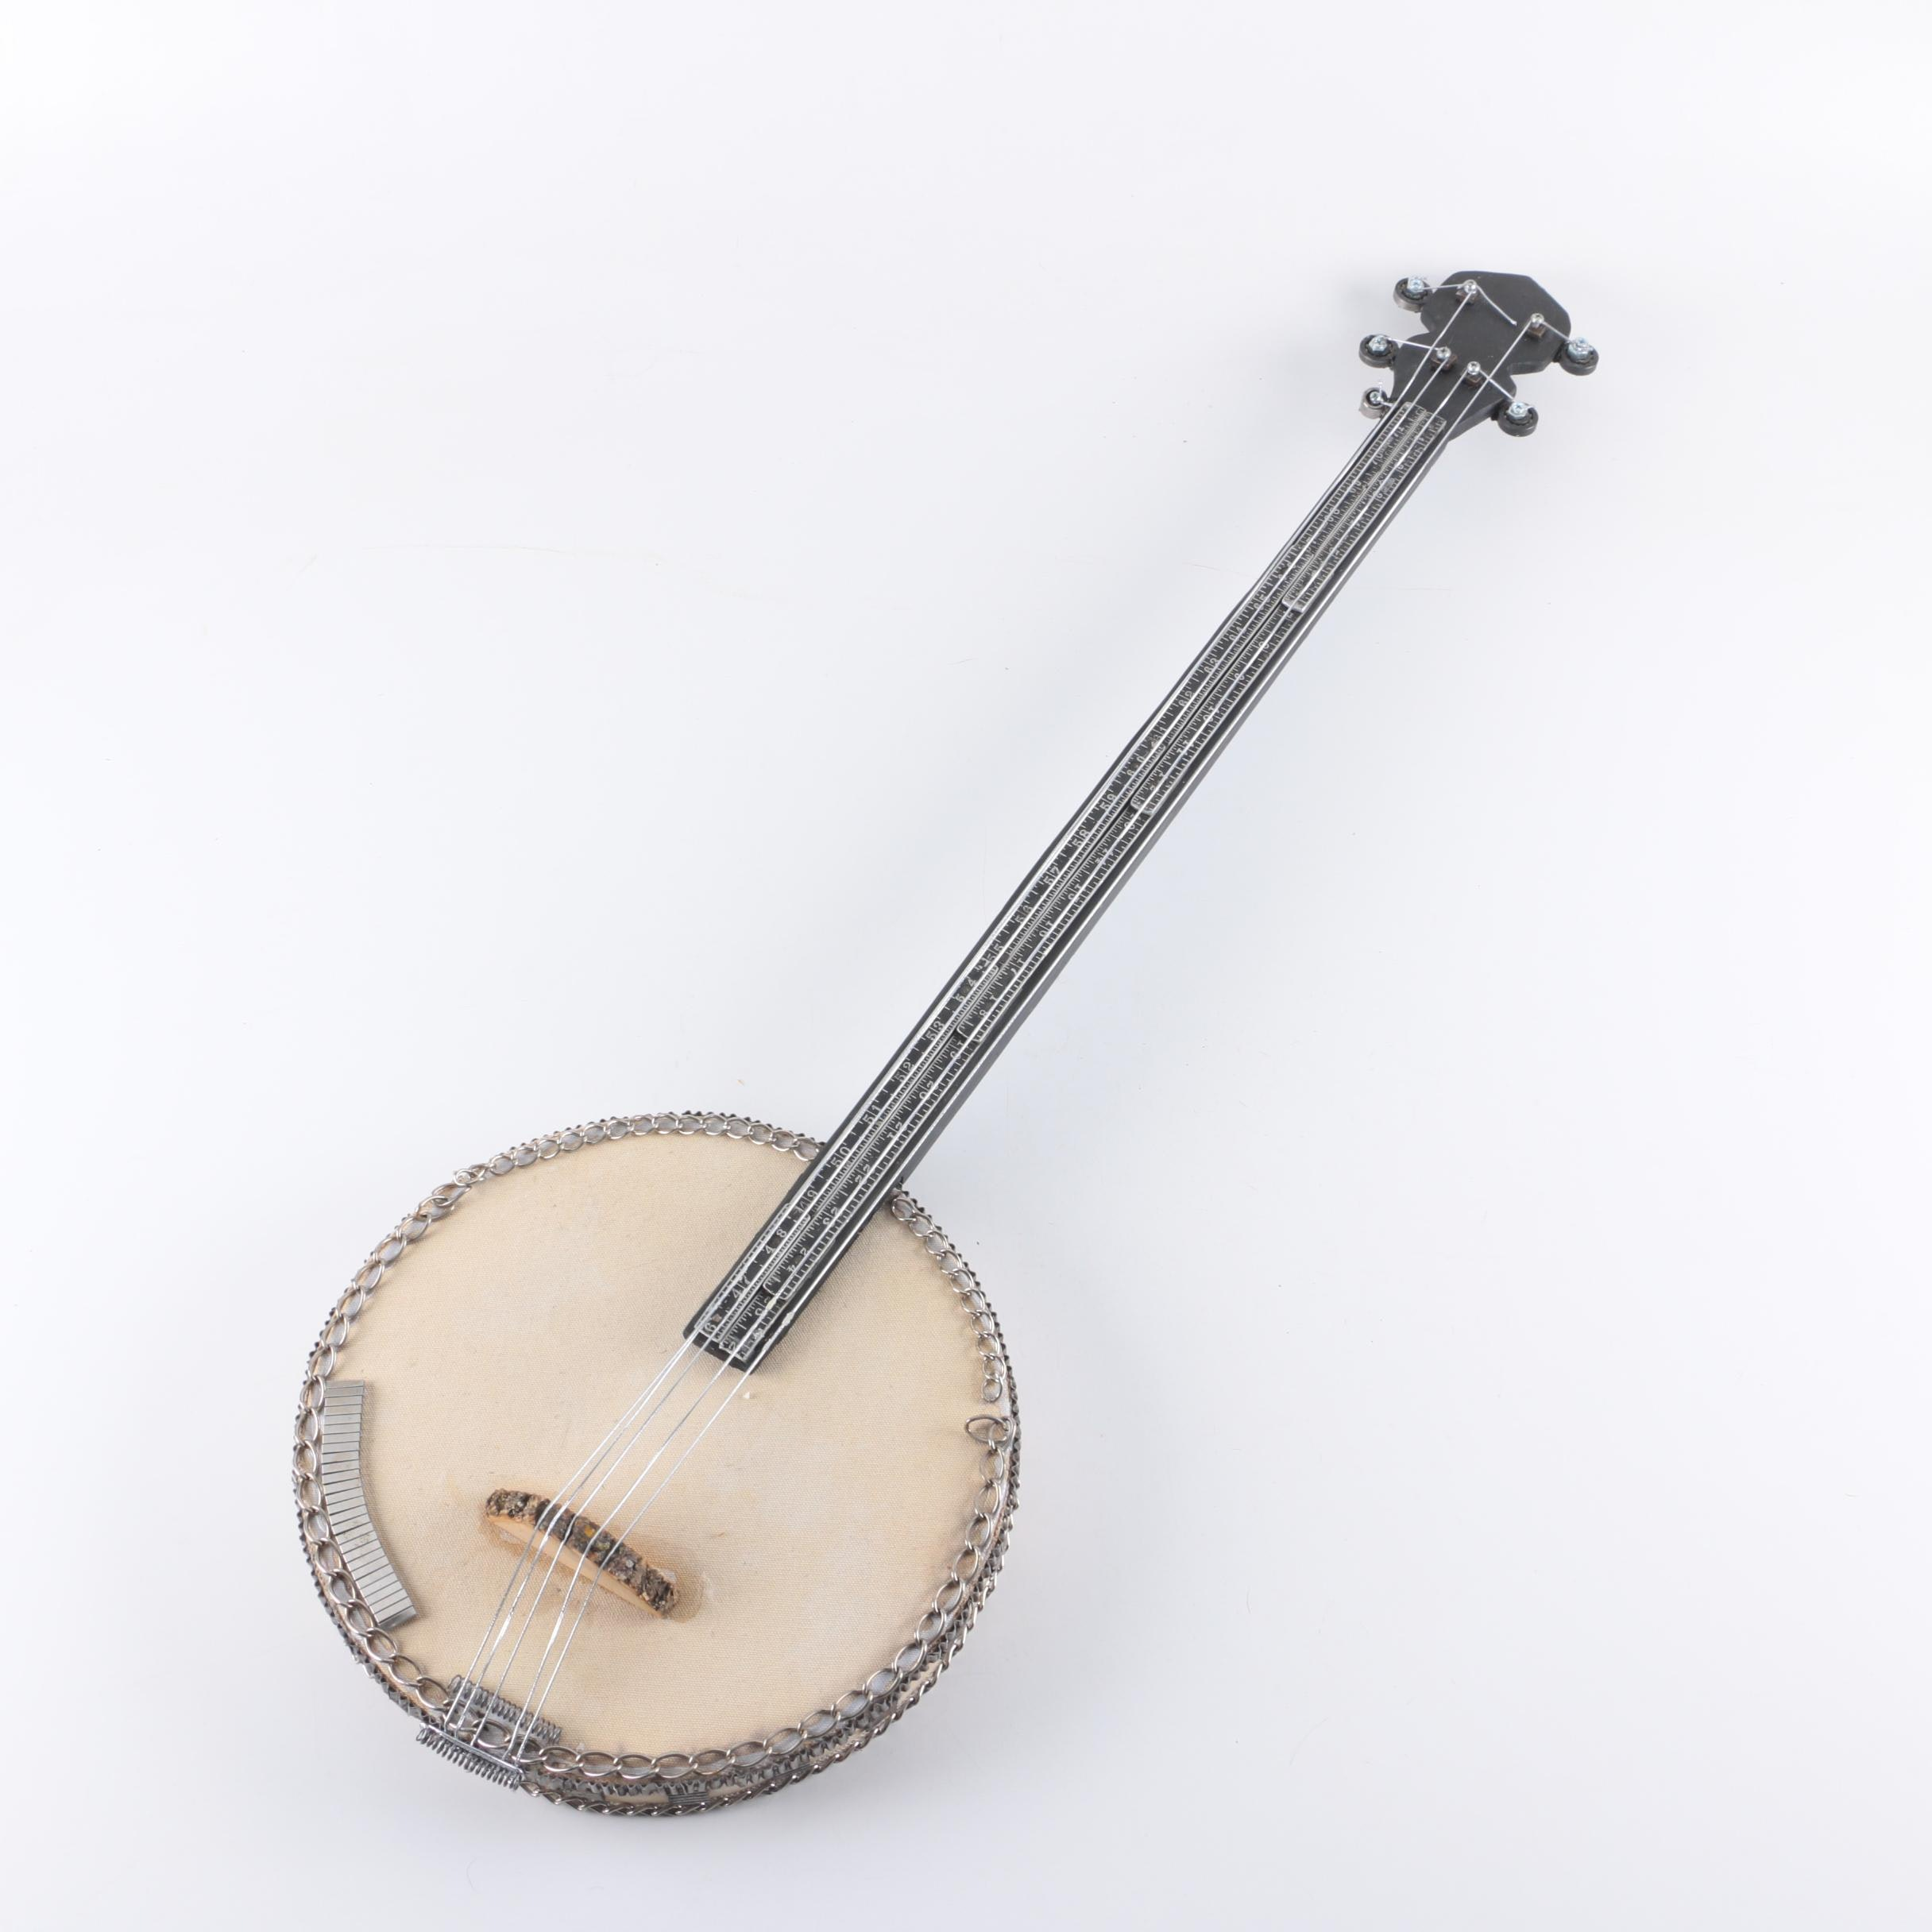 Handmade Decorative Folk Art Banjo with Salvaged Materials